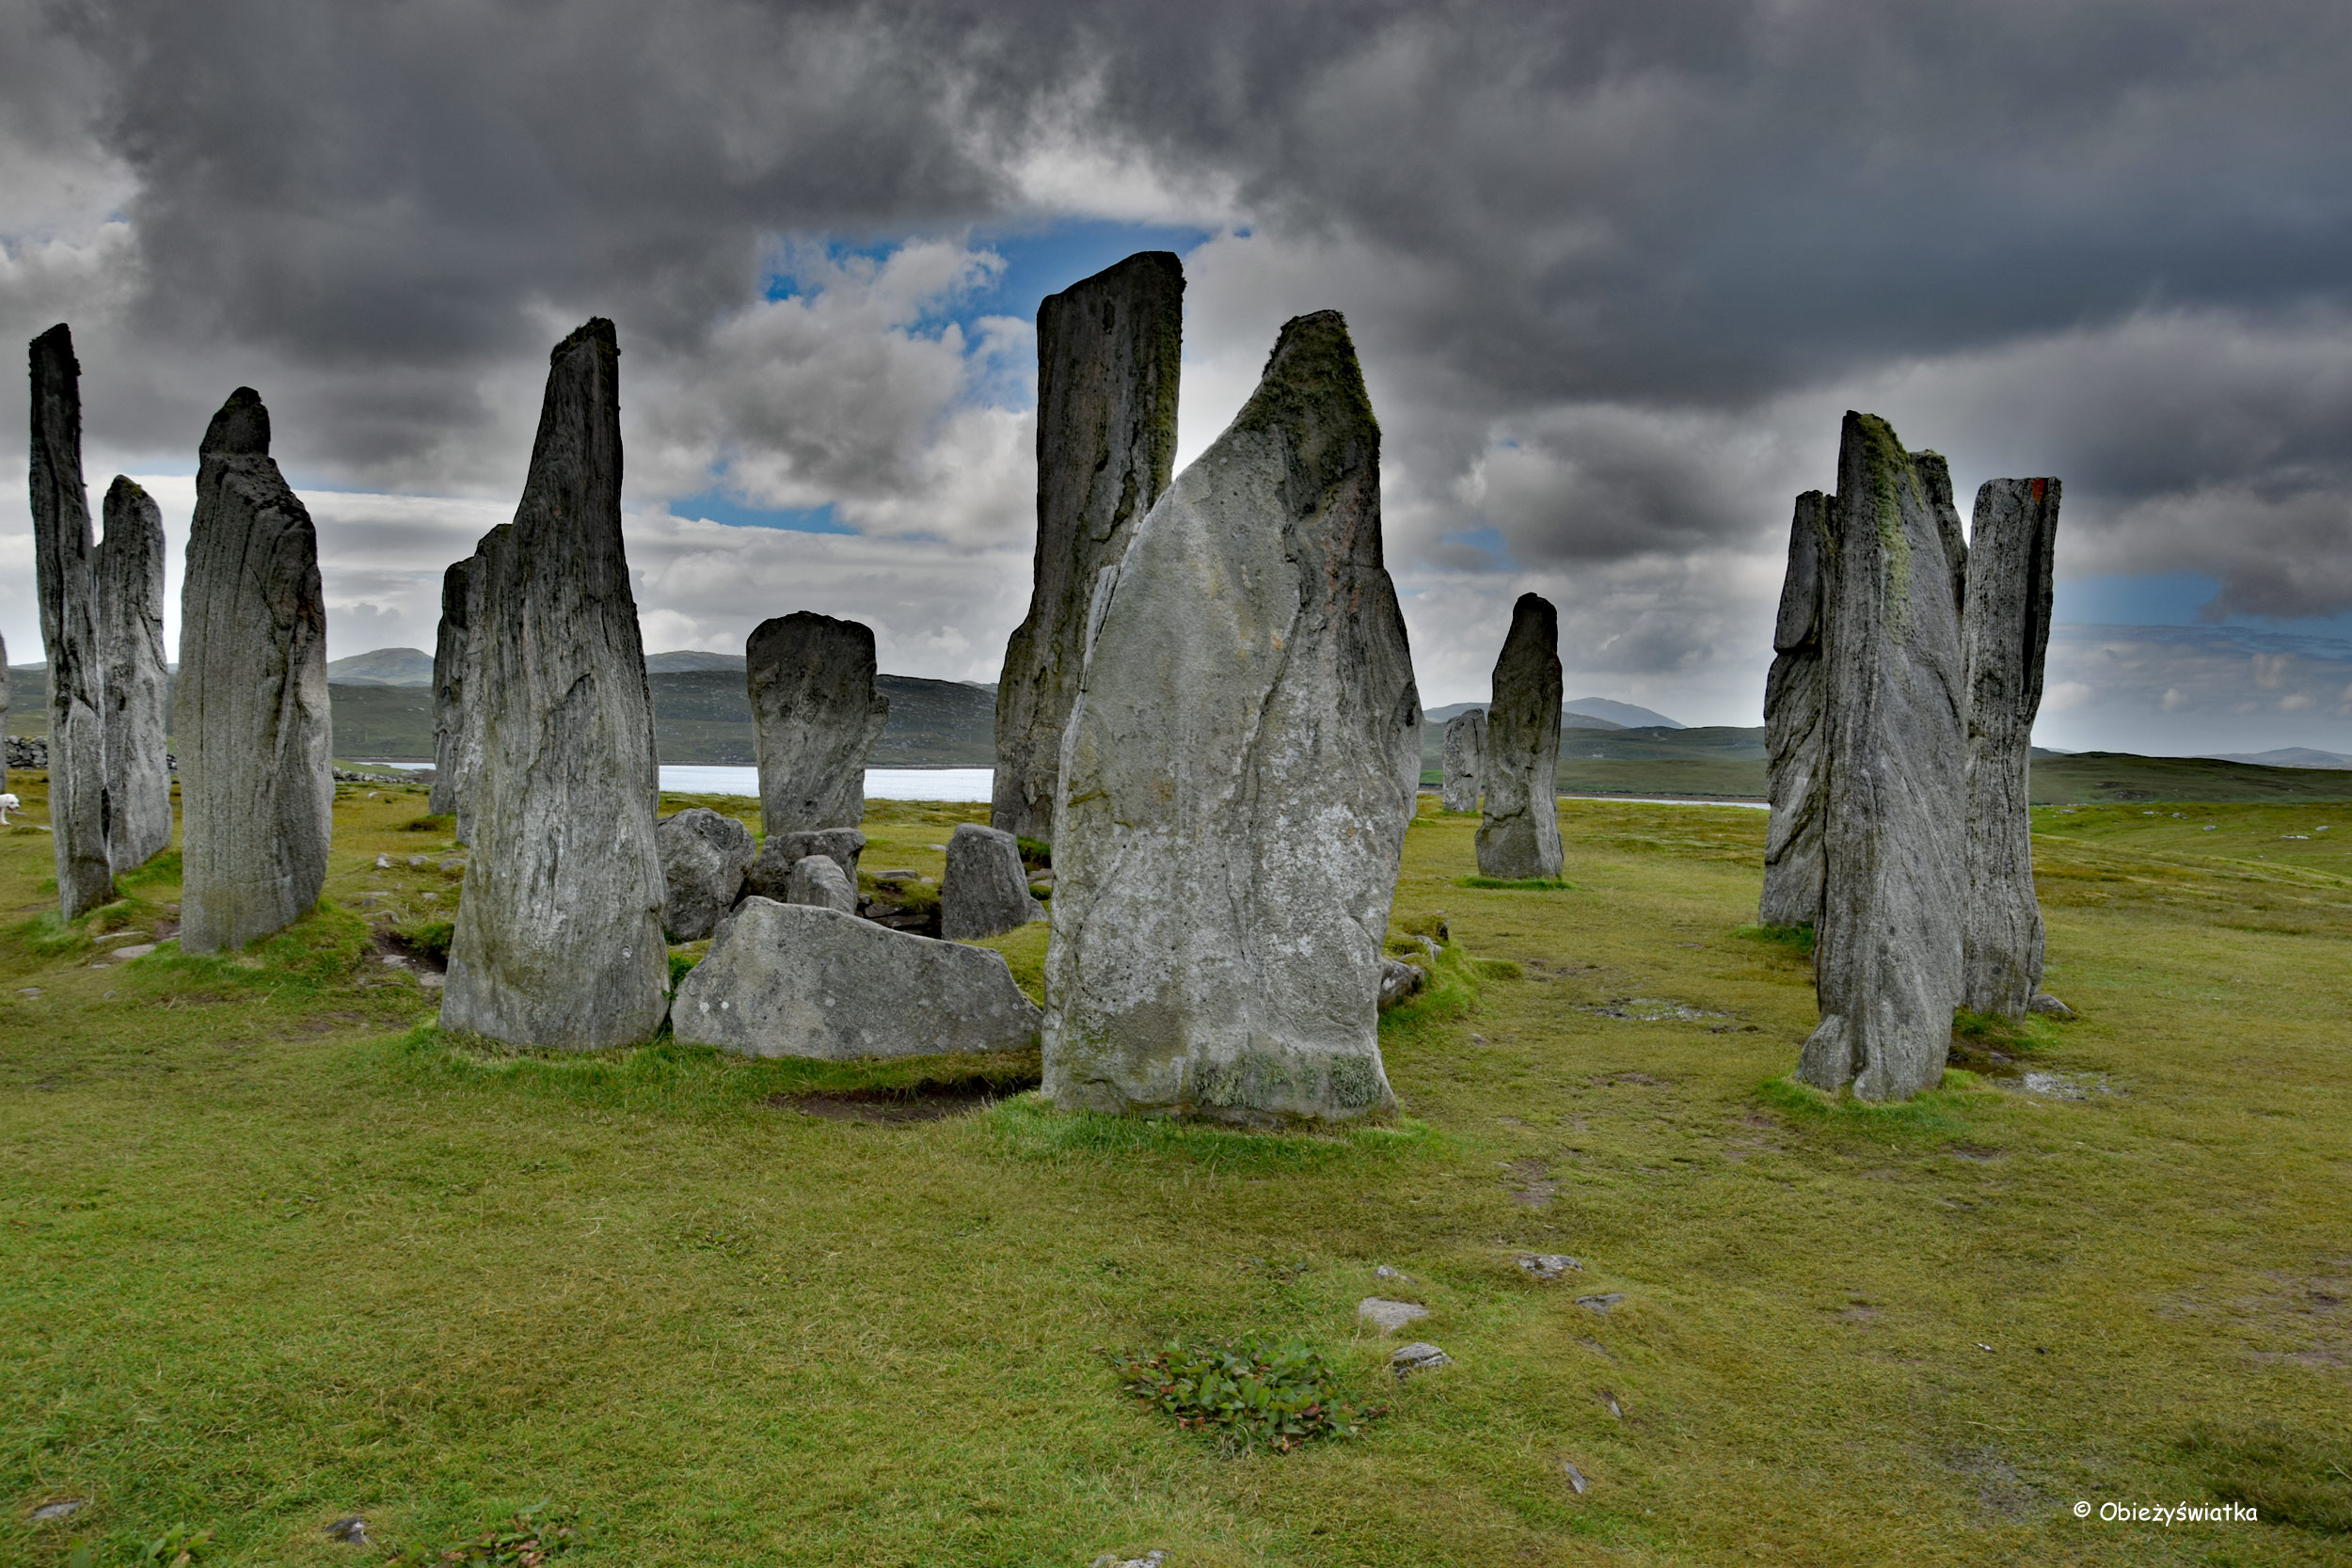 Kromlech / kamienny krąg, Callanish, Lewis and Harris